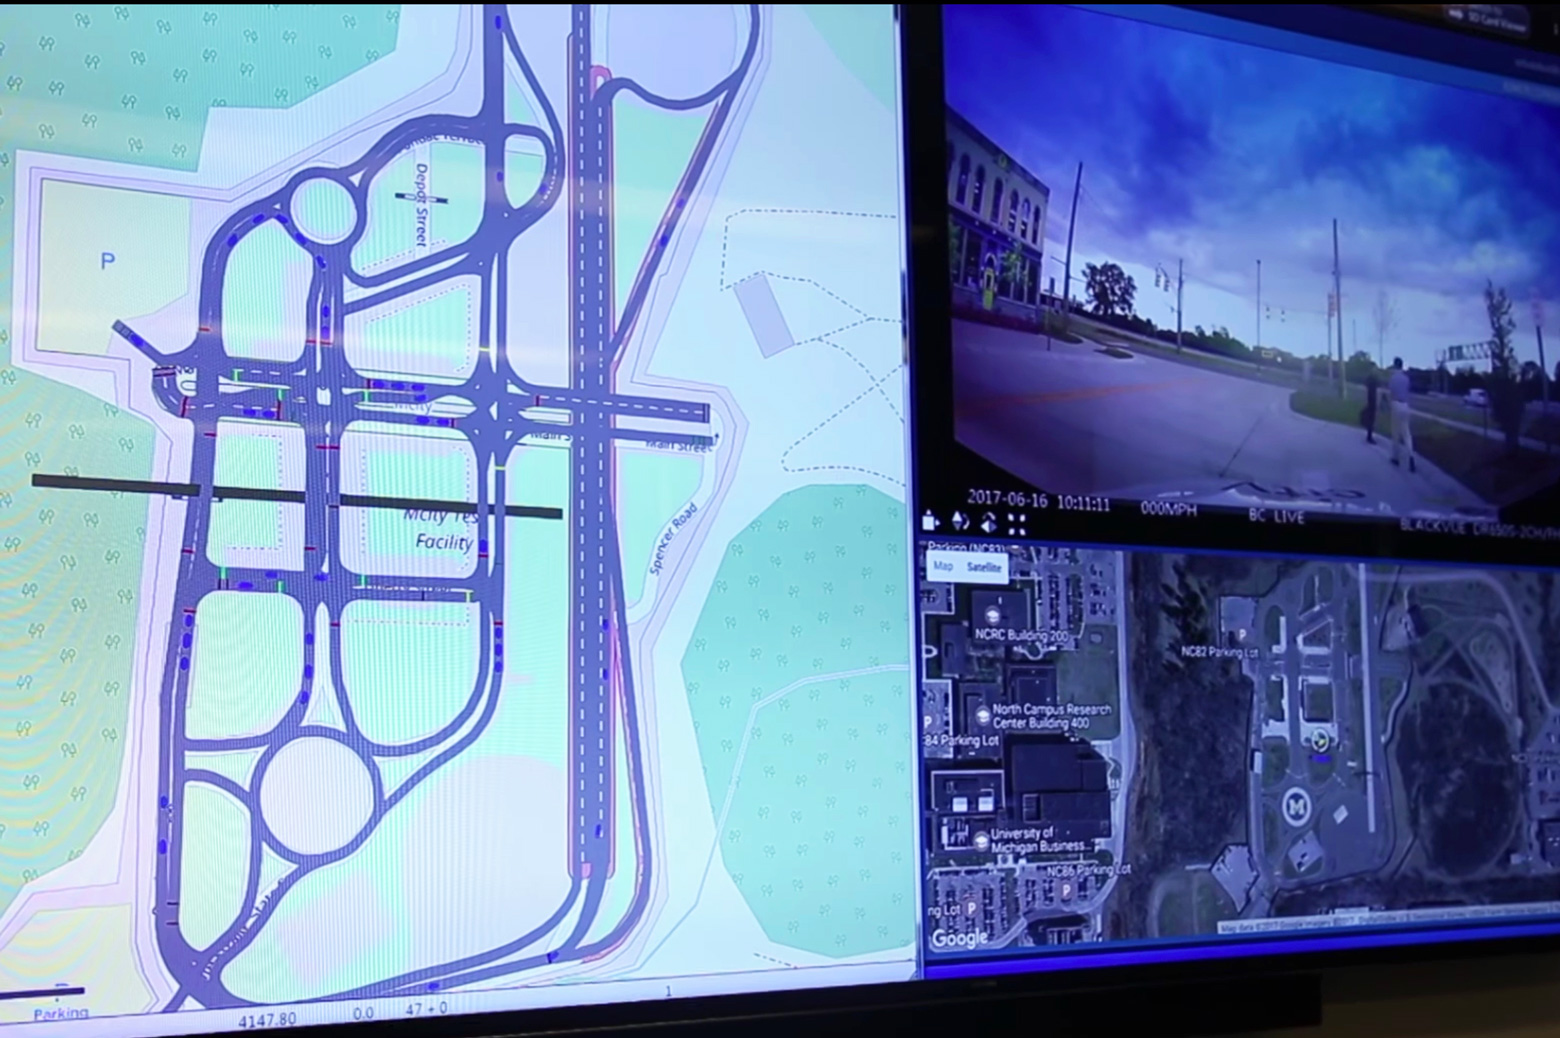 Virtual connected vehicles (blue) can be seen traveling at Mcity alongside real connected and automated vehicles (red). This unique type of augmented reality can dramatically accelerate testing of connected and automated vehicles and enable researchers to test scenarios in a safer, more cost-effective manner. Credit: Screen capture from a video by Mike Wood